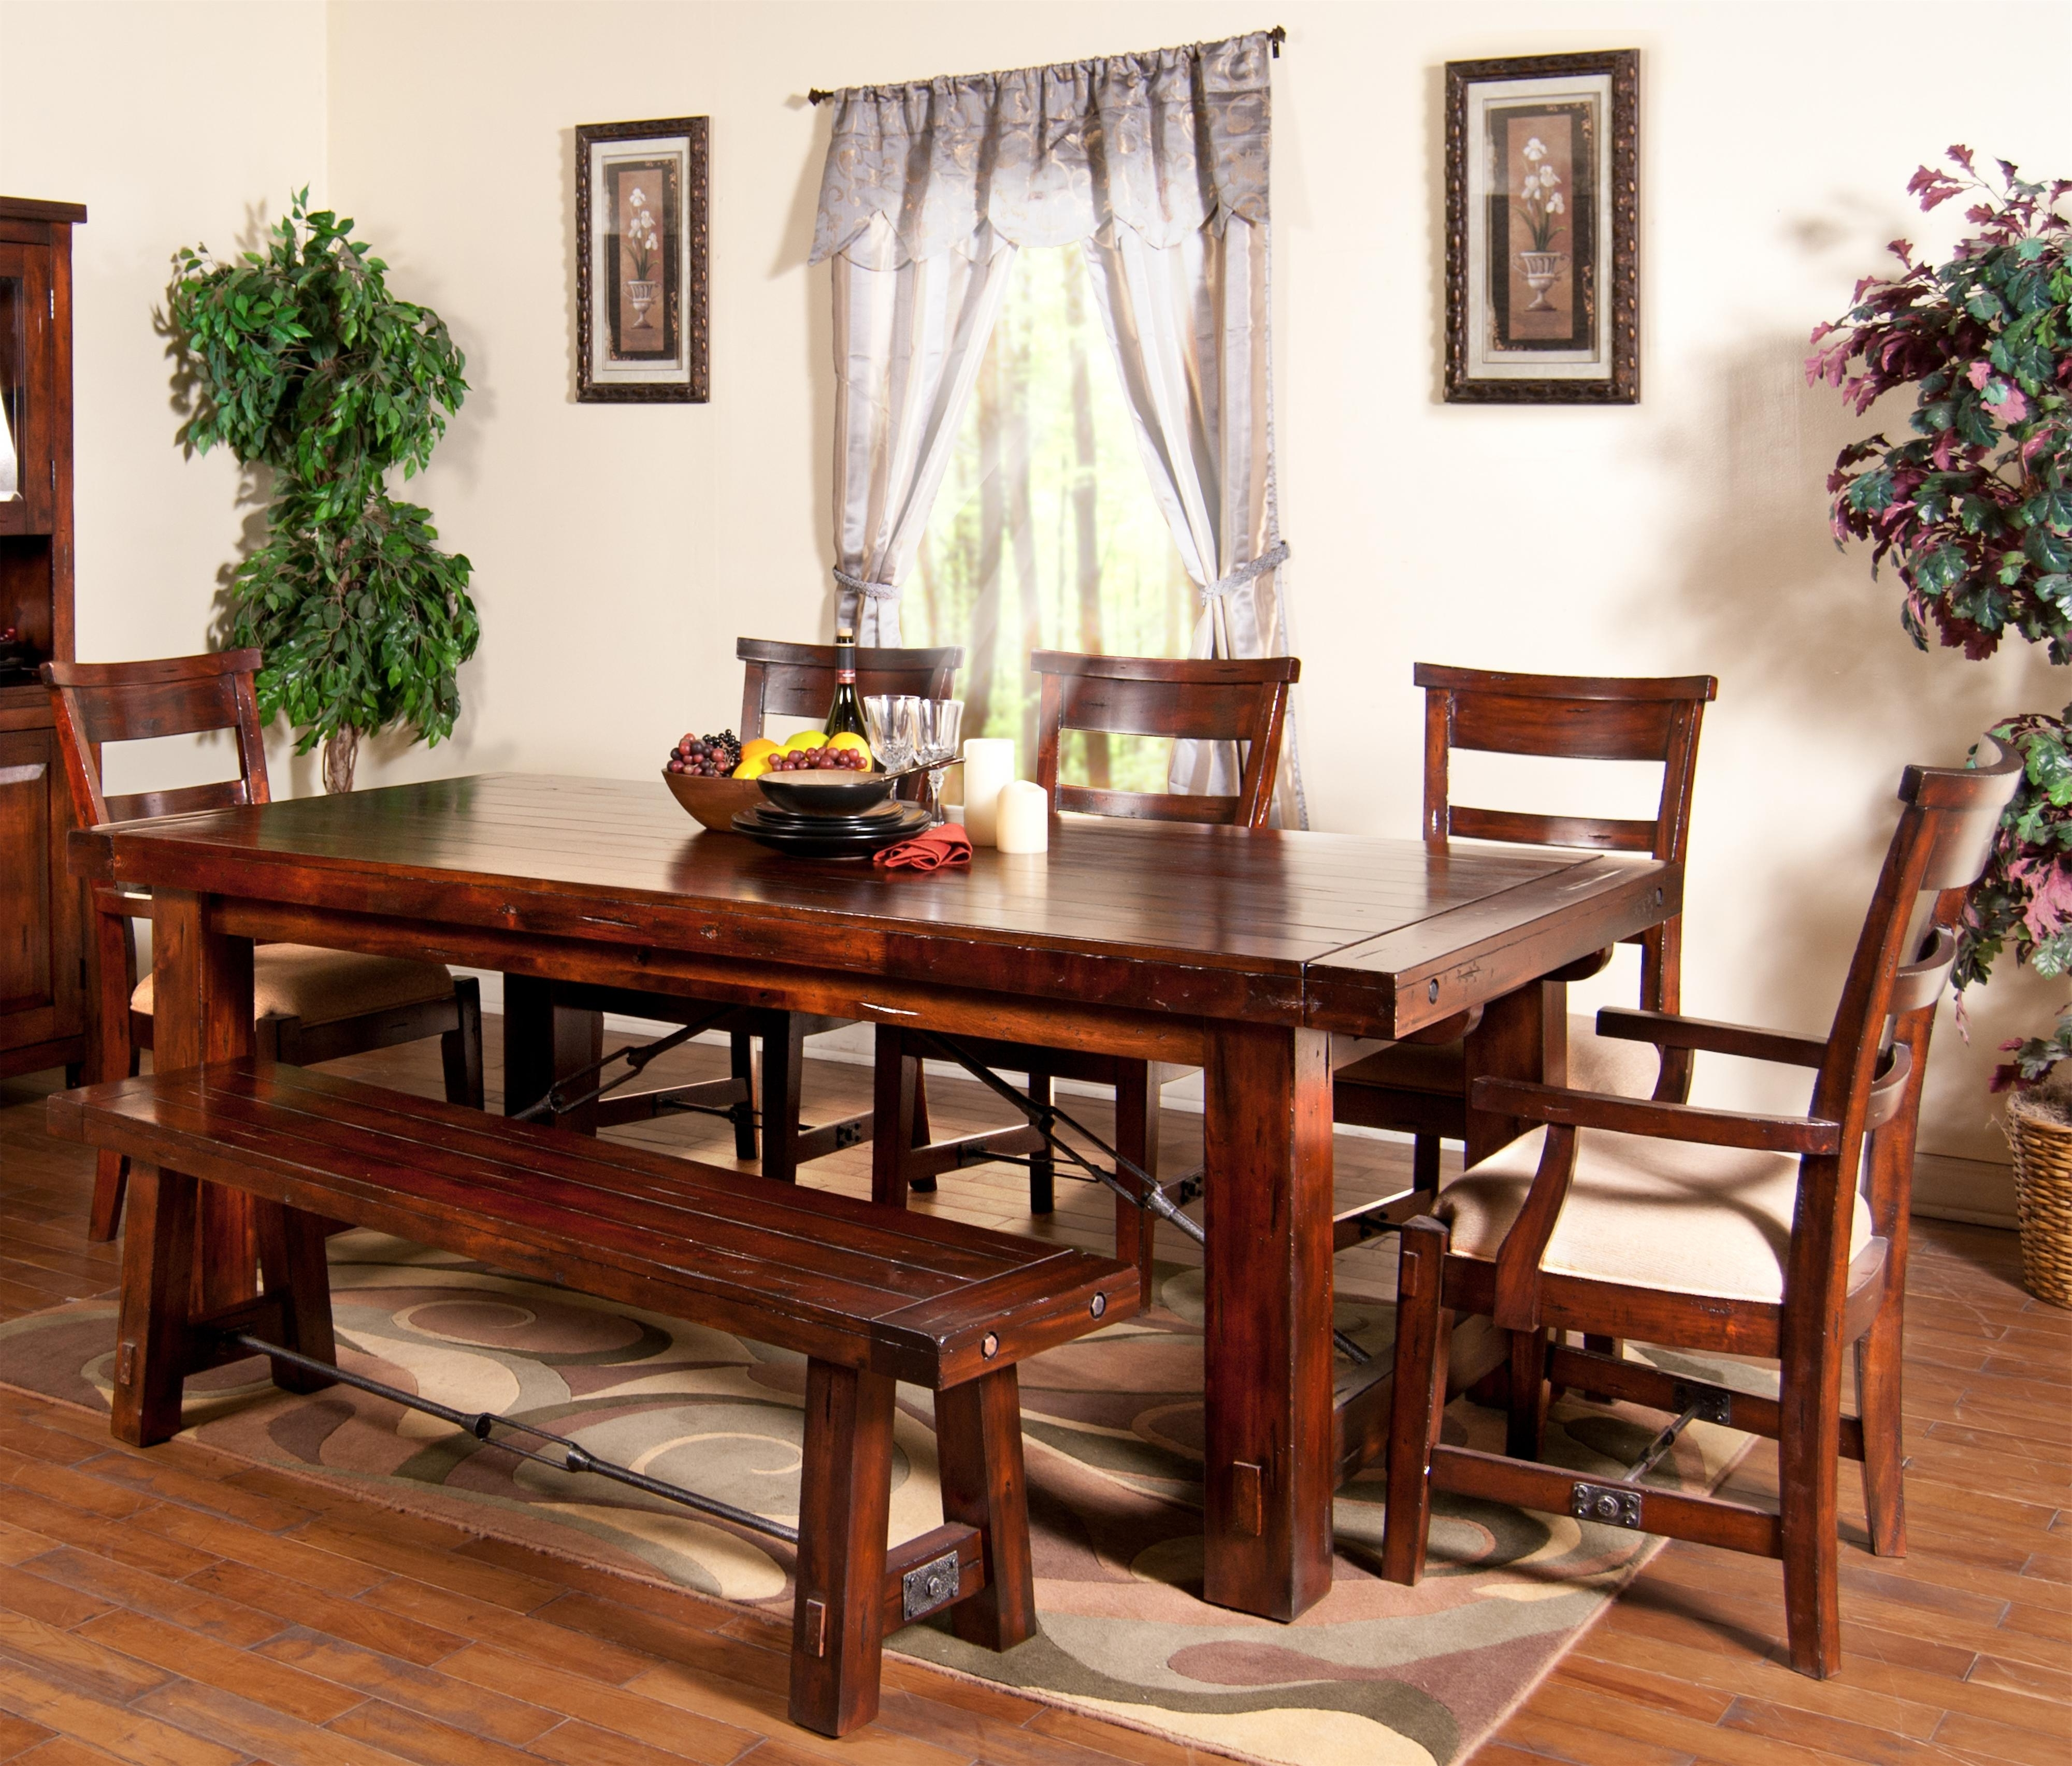 Craftsman 7 Piece Rectangle Extension Dining Sets With Side Chairs Within Well Known 7 Piece Extension Table With Chairs And Bench Setsunny Designs (View 6 of 25)